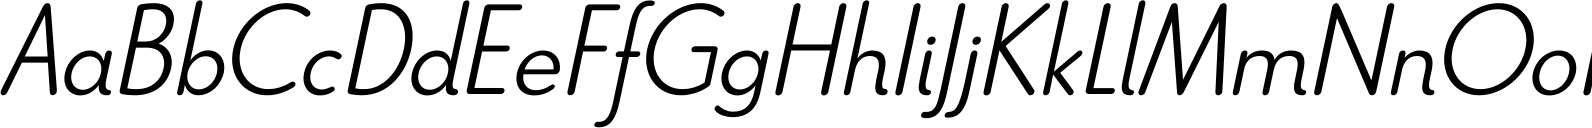 Le Havre Rounded Light Italic